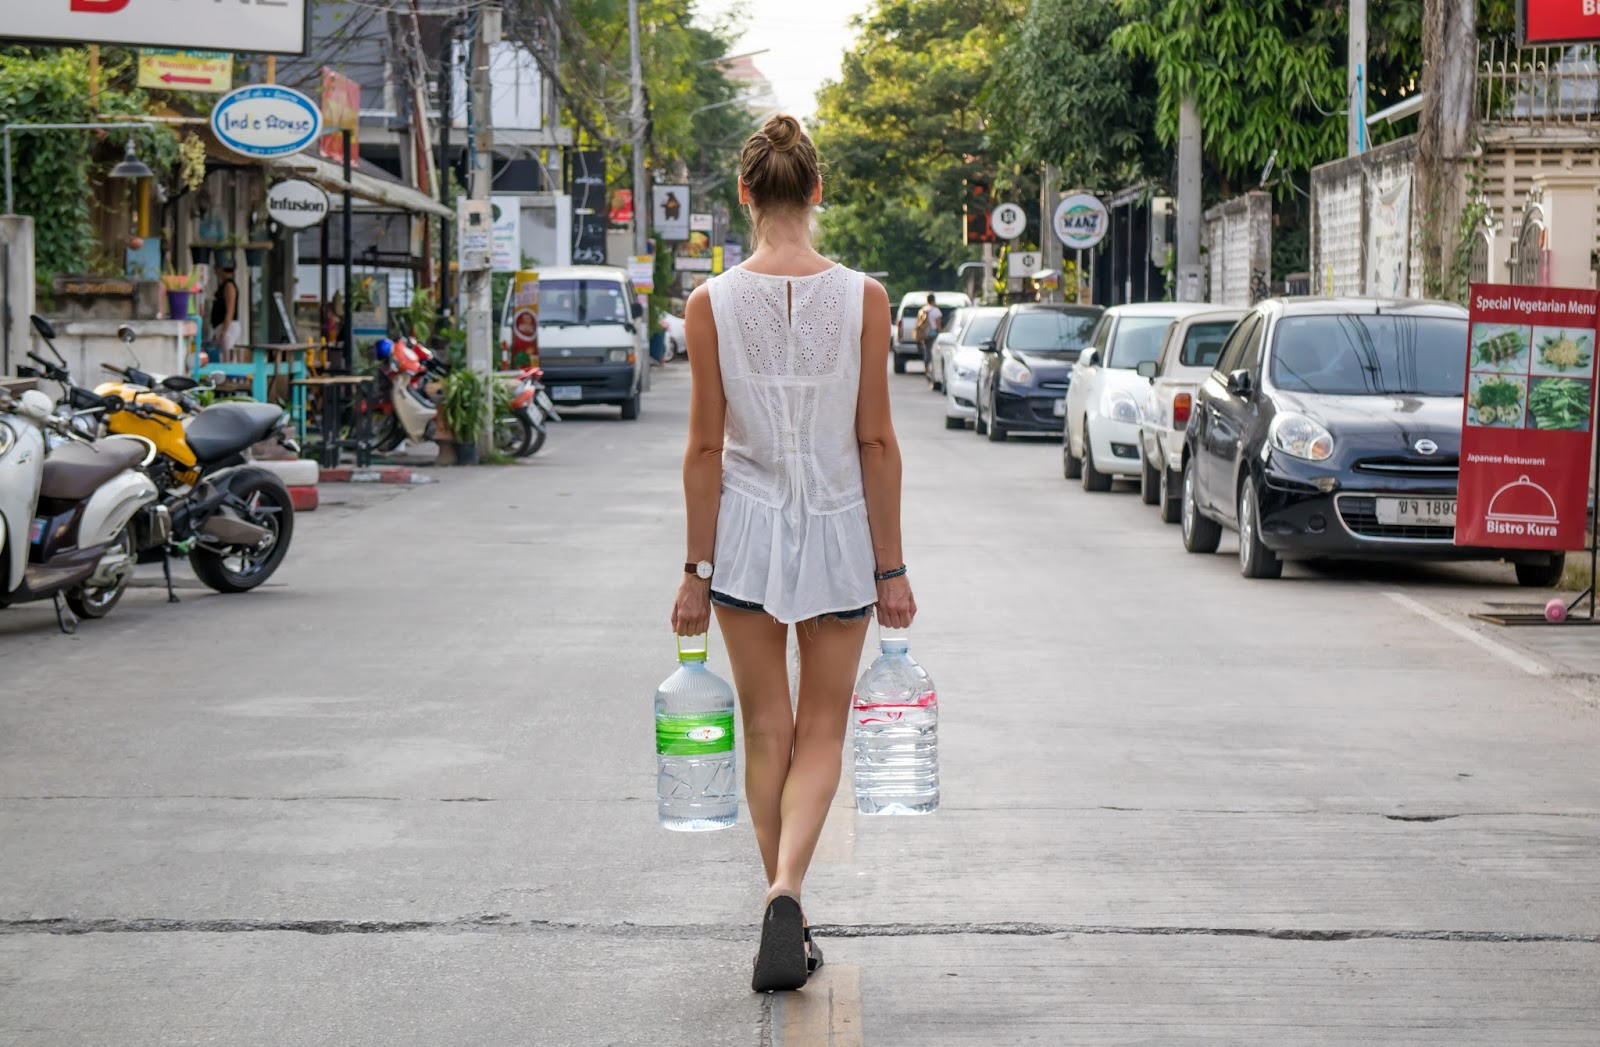 travel blogger, alison hutchinson, tells about the best way to get your water supply in Thailand